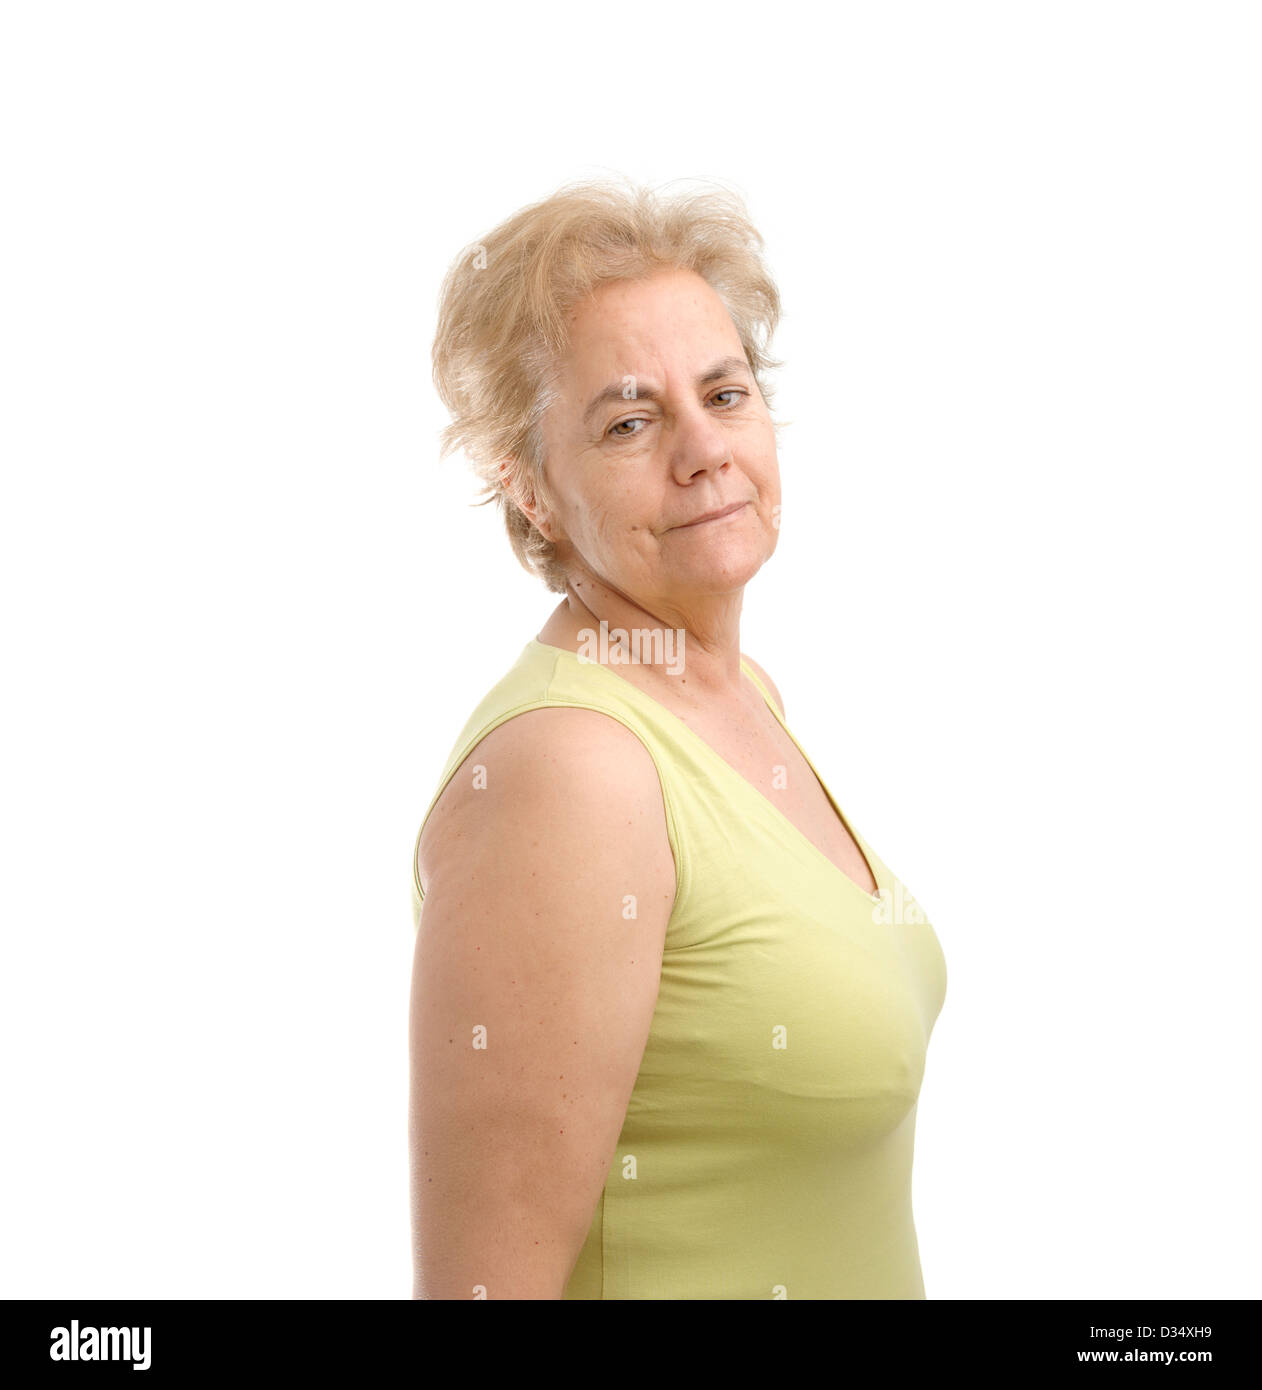 Confident middle aged woman wearing a green sleeveless shirt and looking over her right shoulder isolated on white - Stock Image